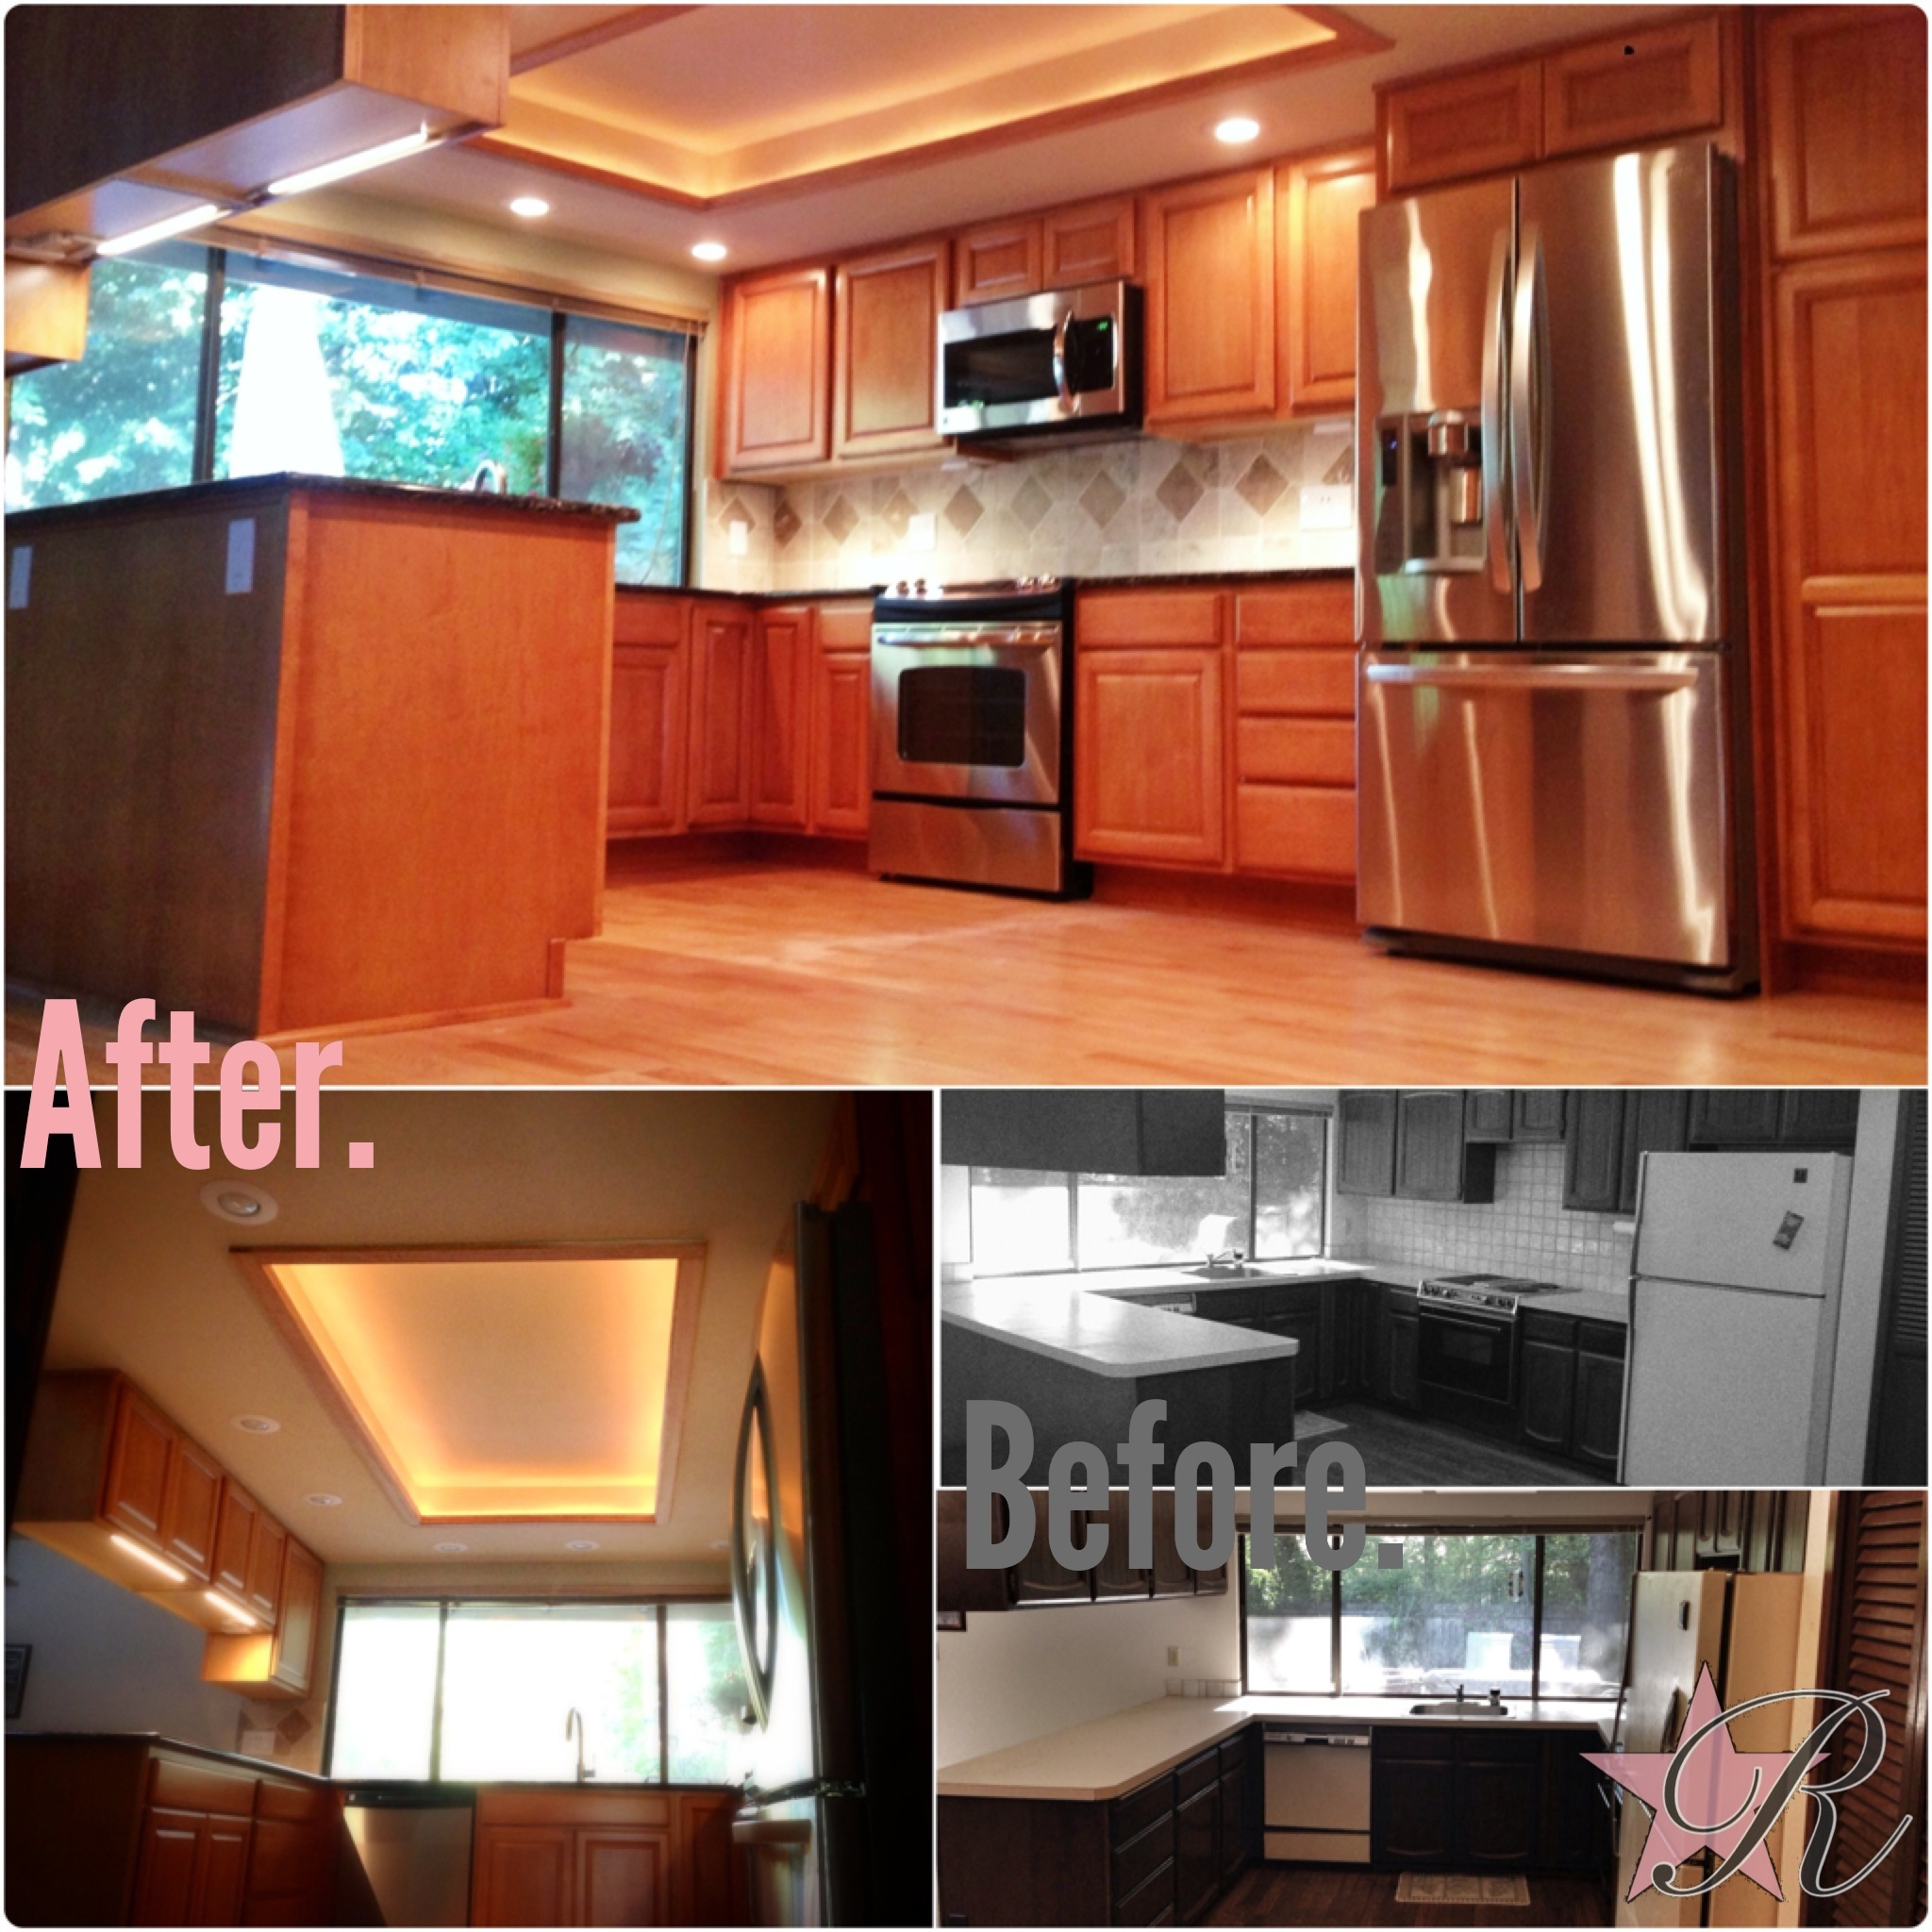 This kitchen was revitalized with new cabinets, tile, and flooring. When the fluorescent lights were removed, Rockstar Remodel was able to rebuild a raised section of the ceiling with accent lighting to add some light in addition to the new recessed lights.